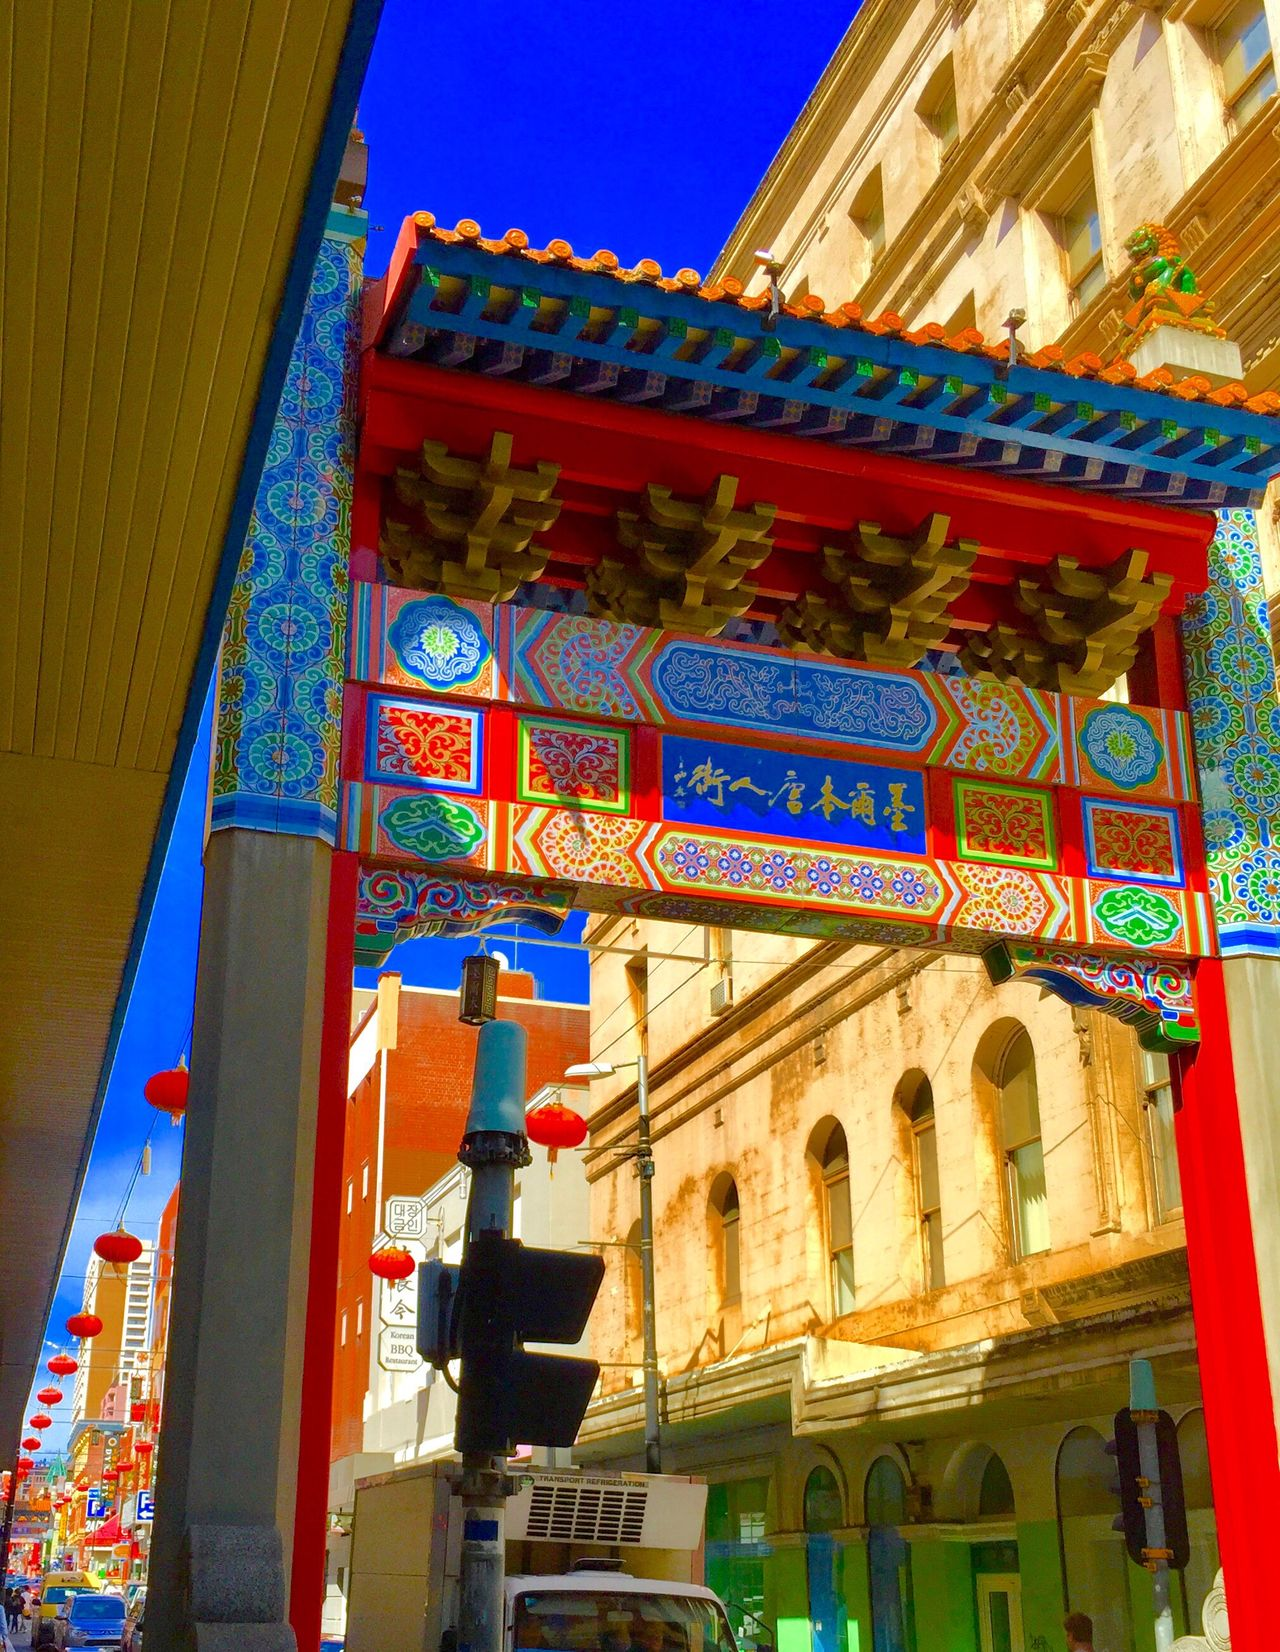 Architecture Religion Travel Building Exterior Built Structure Place Of Worship Travel Destinations Entrance Low Angle View Sky City Non-western Script Text Spirituality No People Outdoors Day Check This Out EyeEmNewHere EyeEm Best Shots Architecture Chinatown